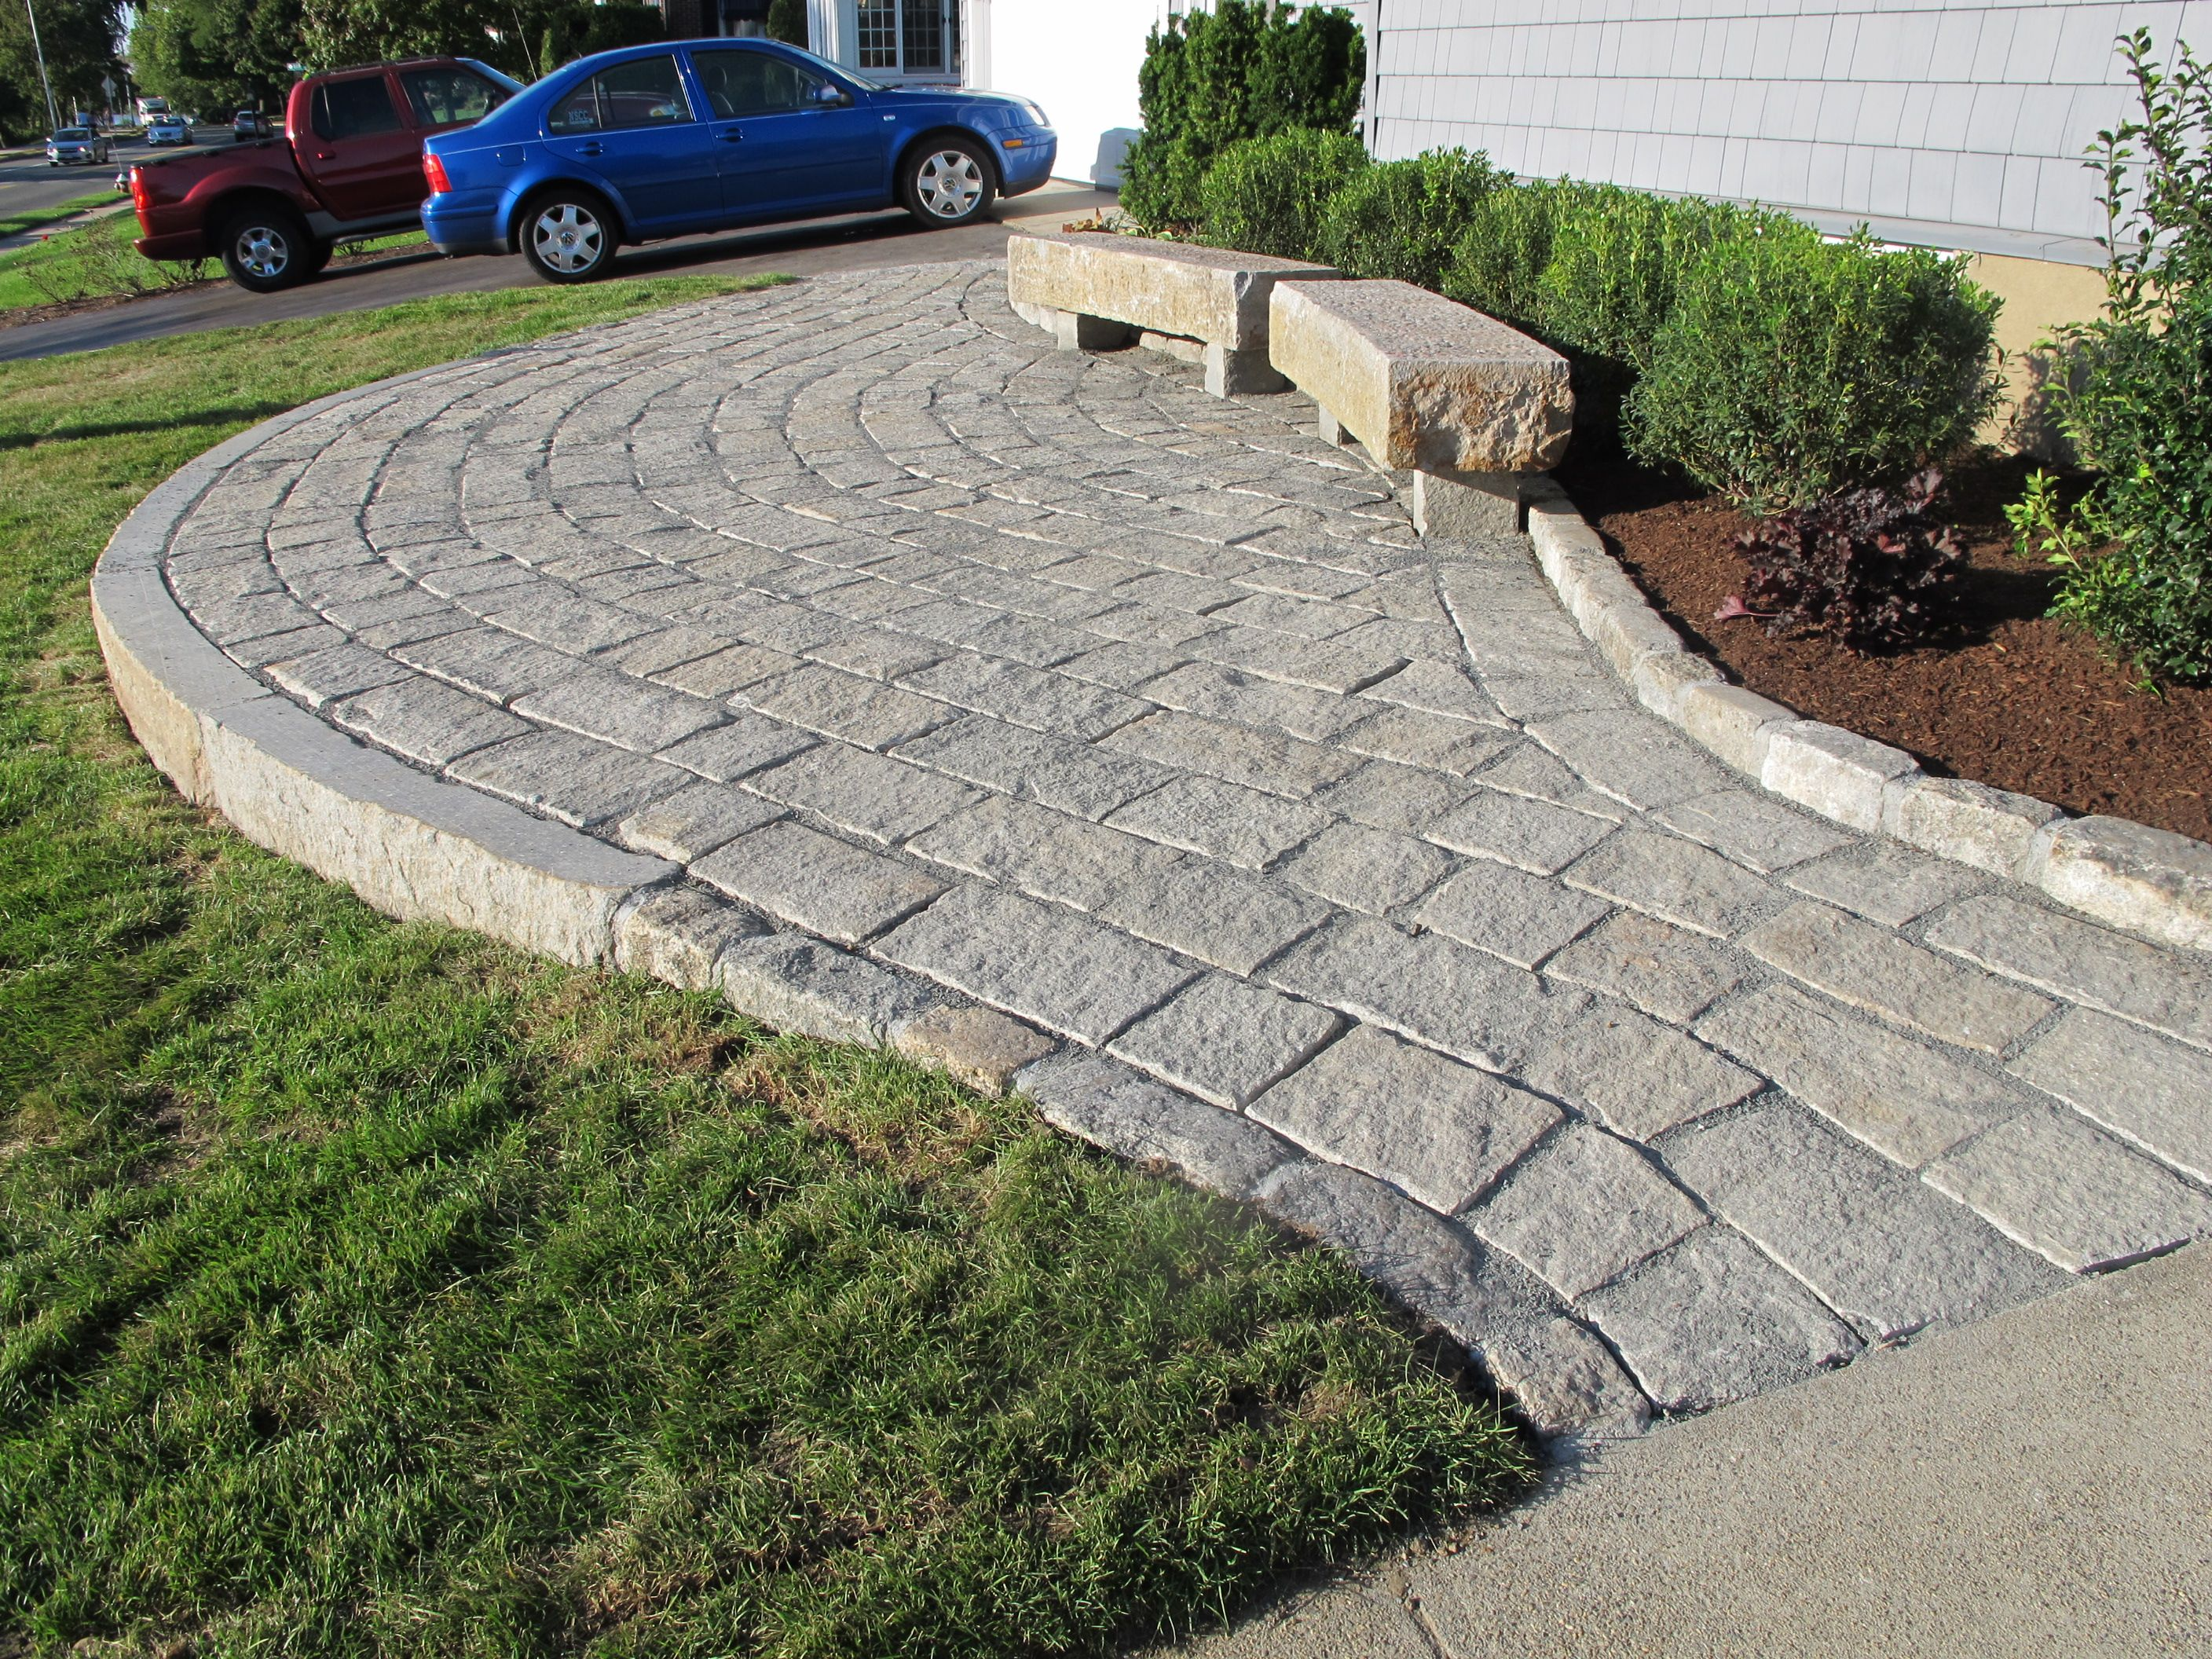 The Project Features A Raised Patio/walkway, Two Radius Benches,  Cobblestone Edging Along